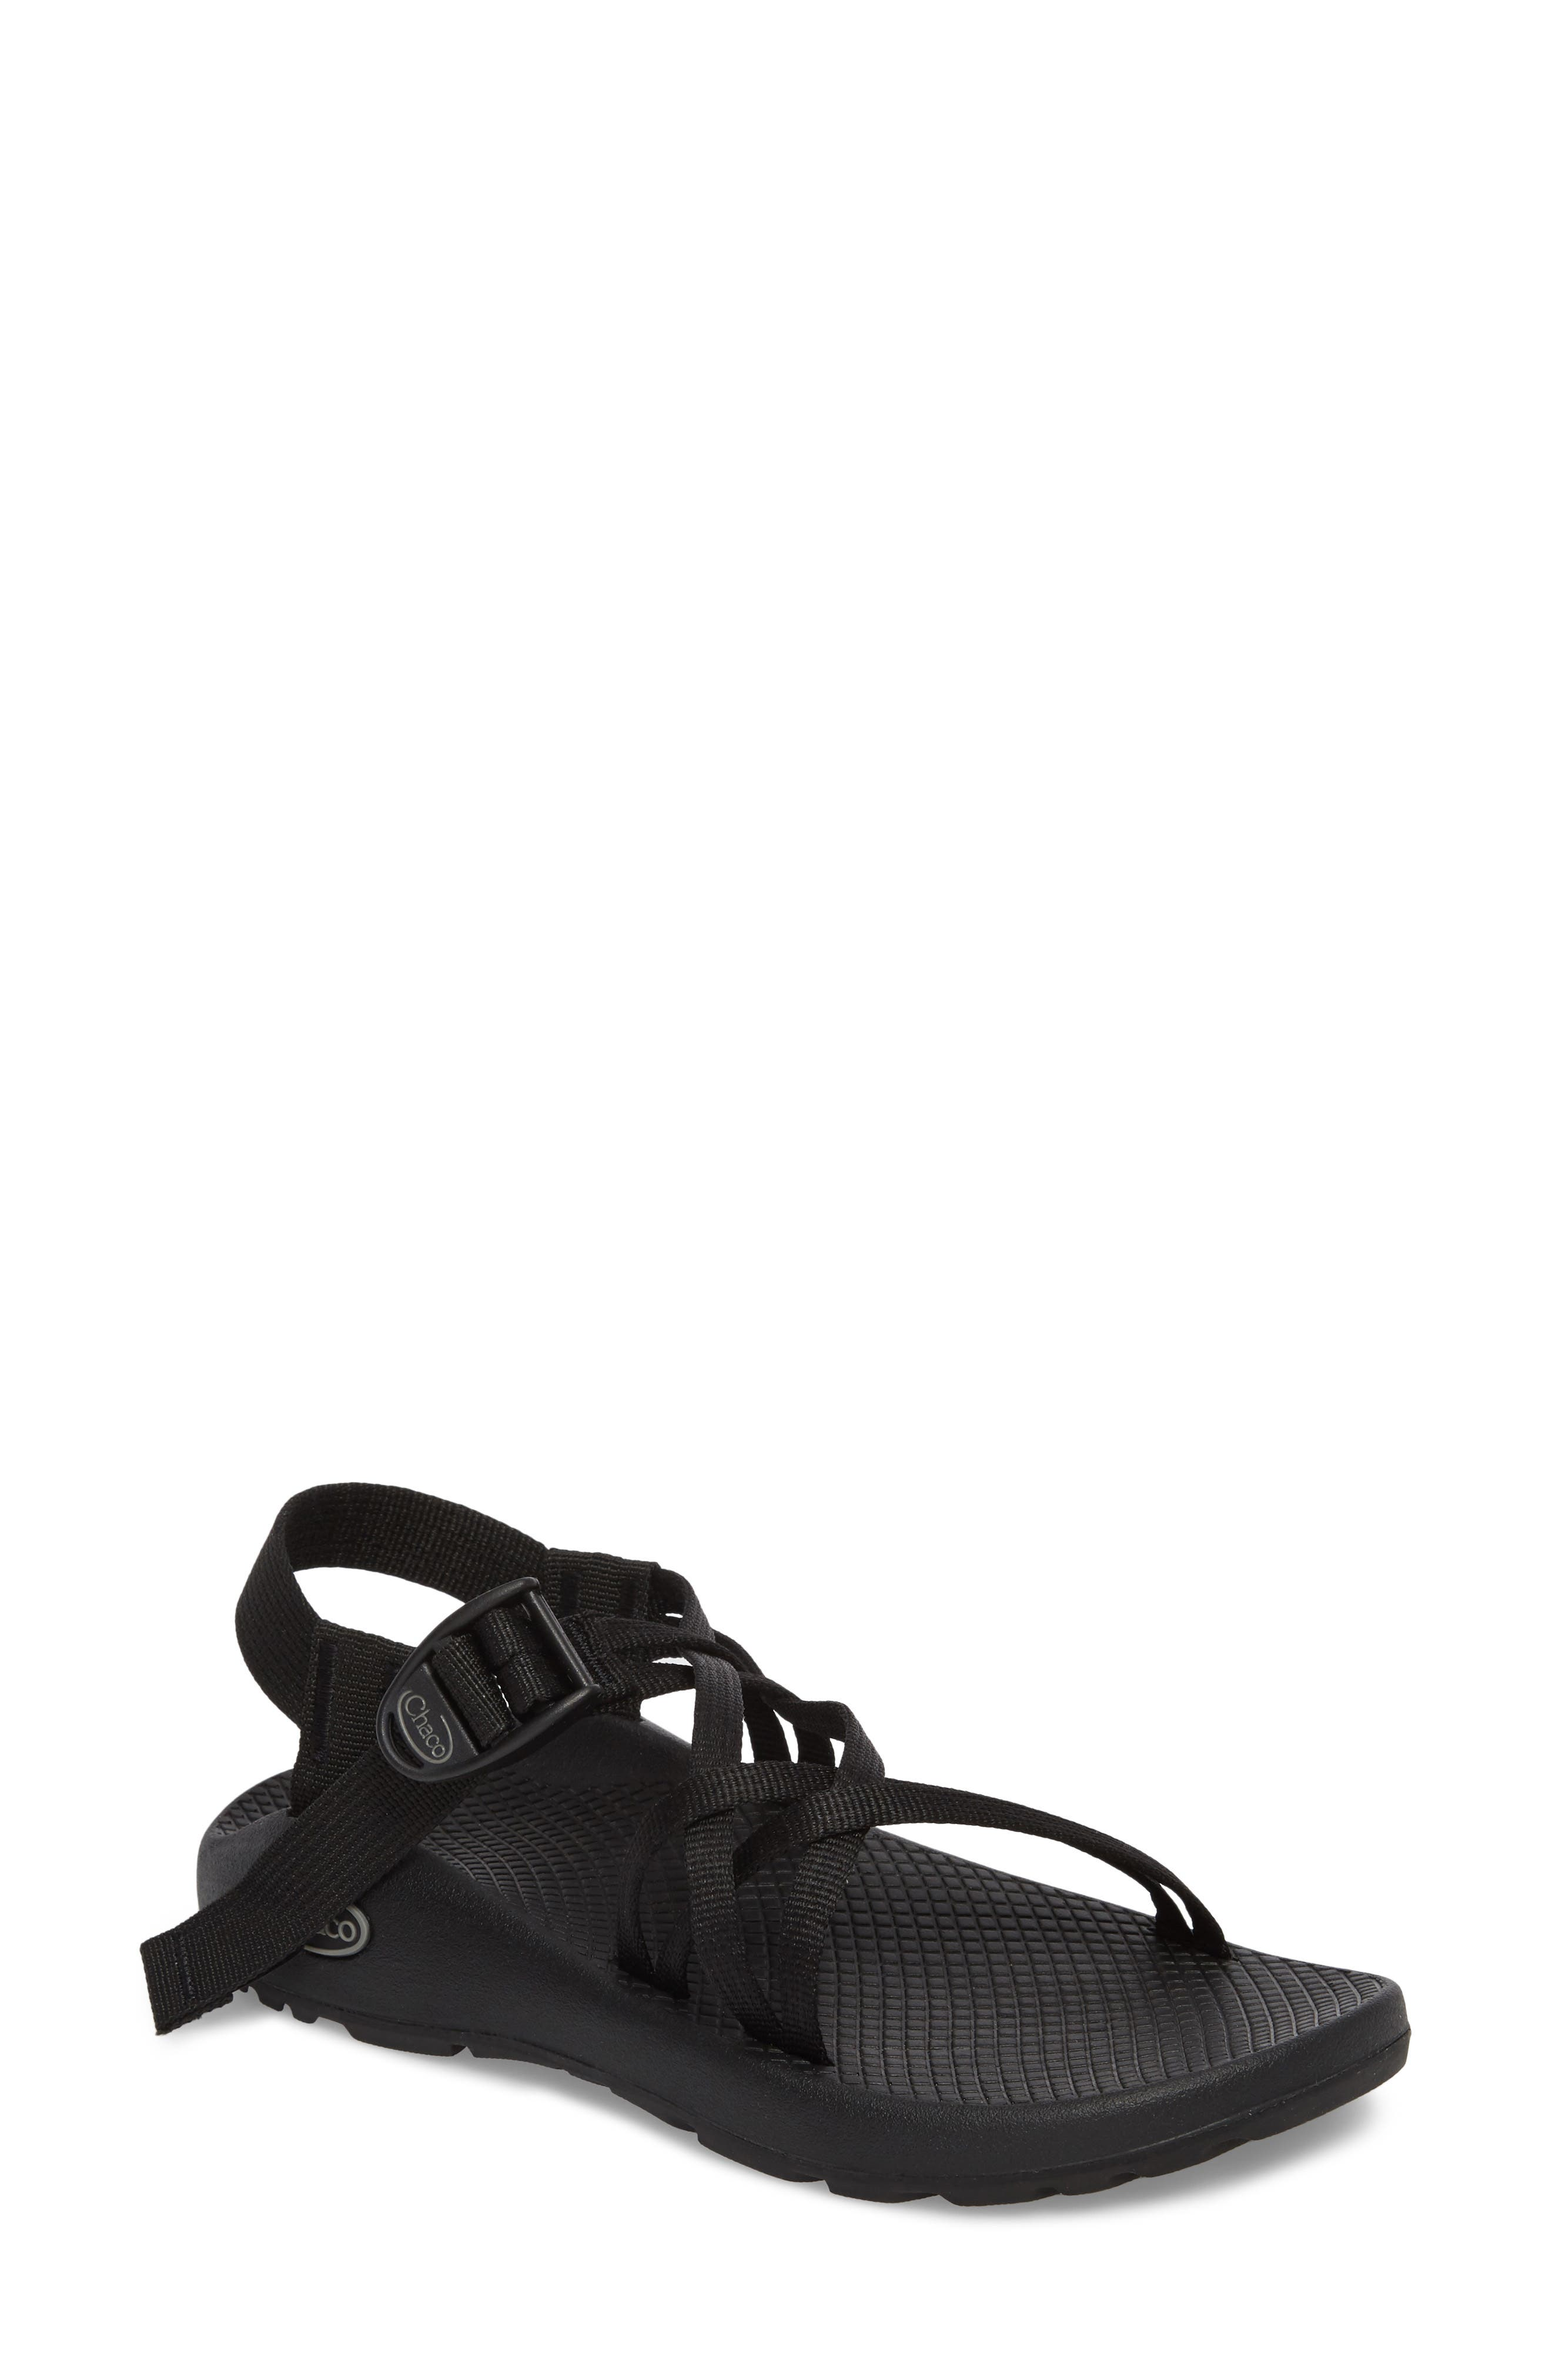 Alternate Image 1 Selected - Chaco ZX1 Classic Sport Sandal (Women)